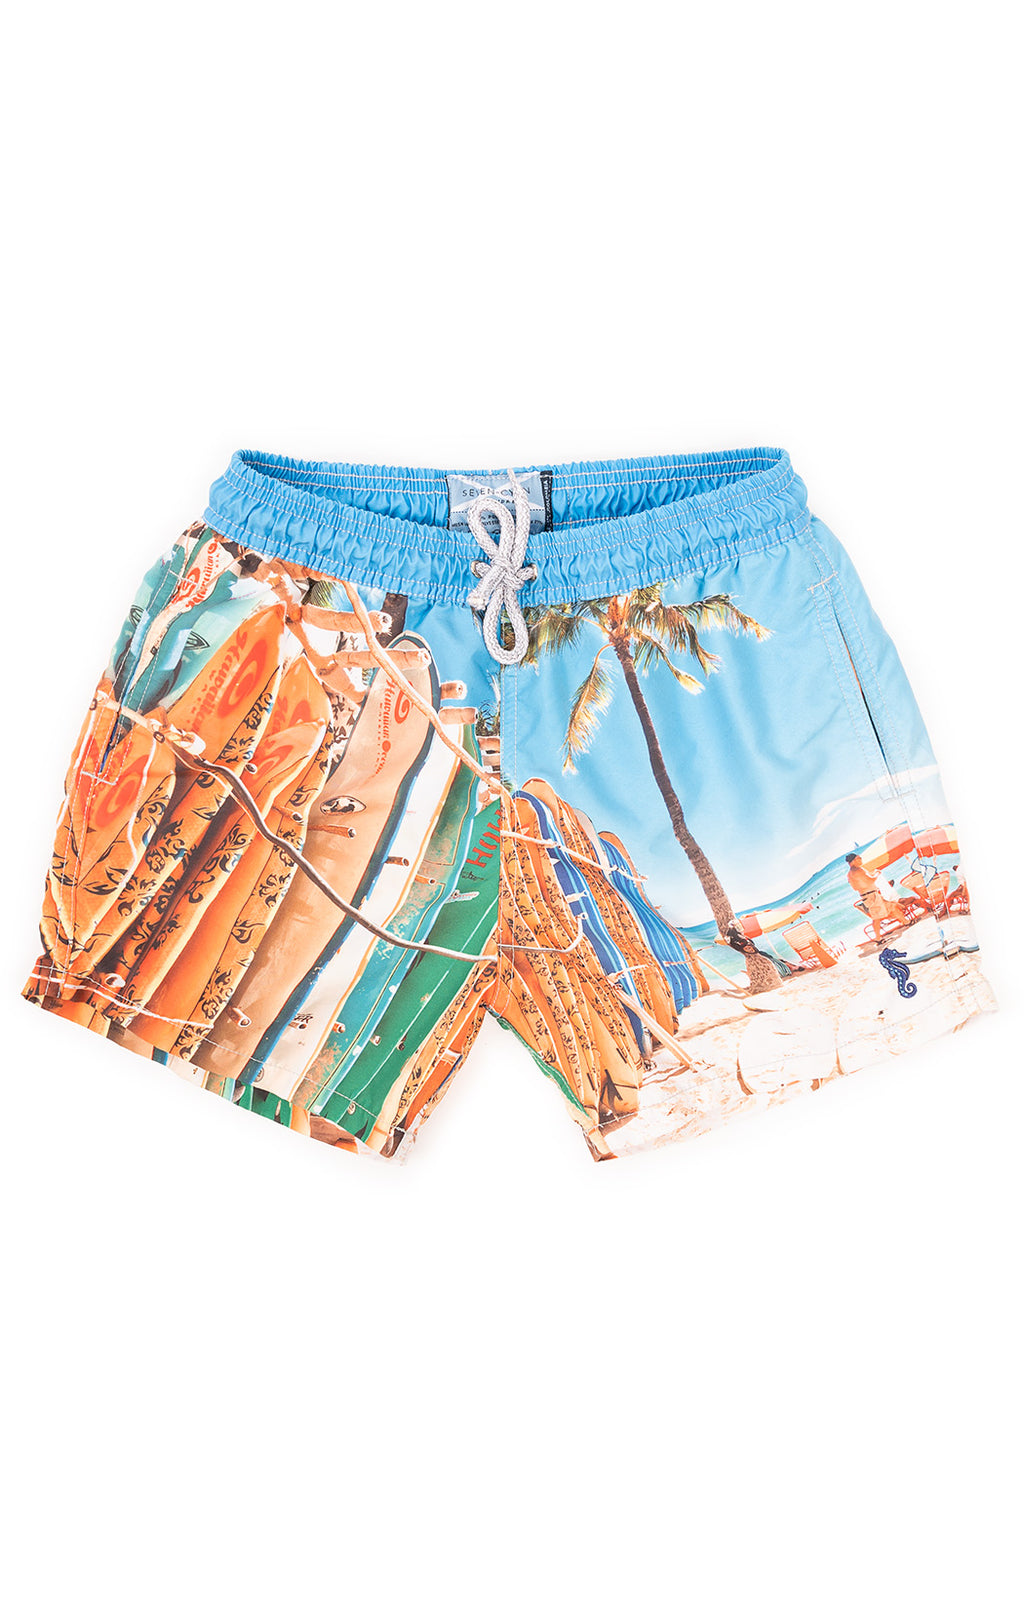 Blue and orange surfboard print swim trucks with drawstring waist and side and back pockets